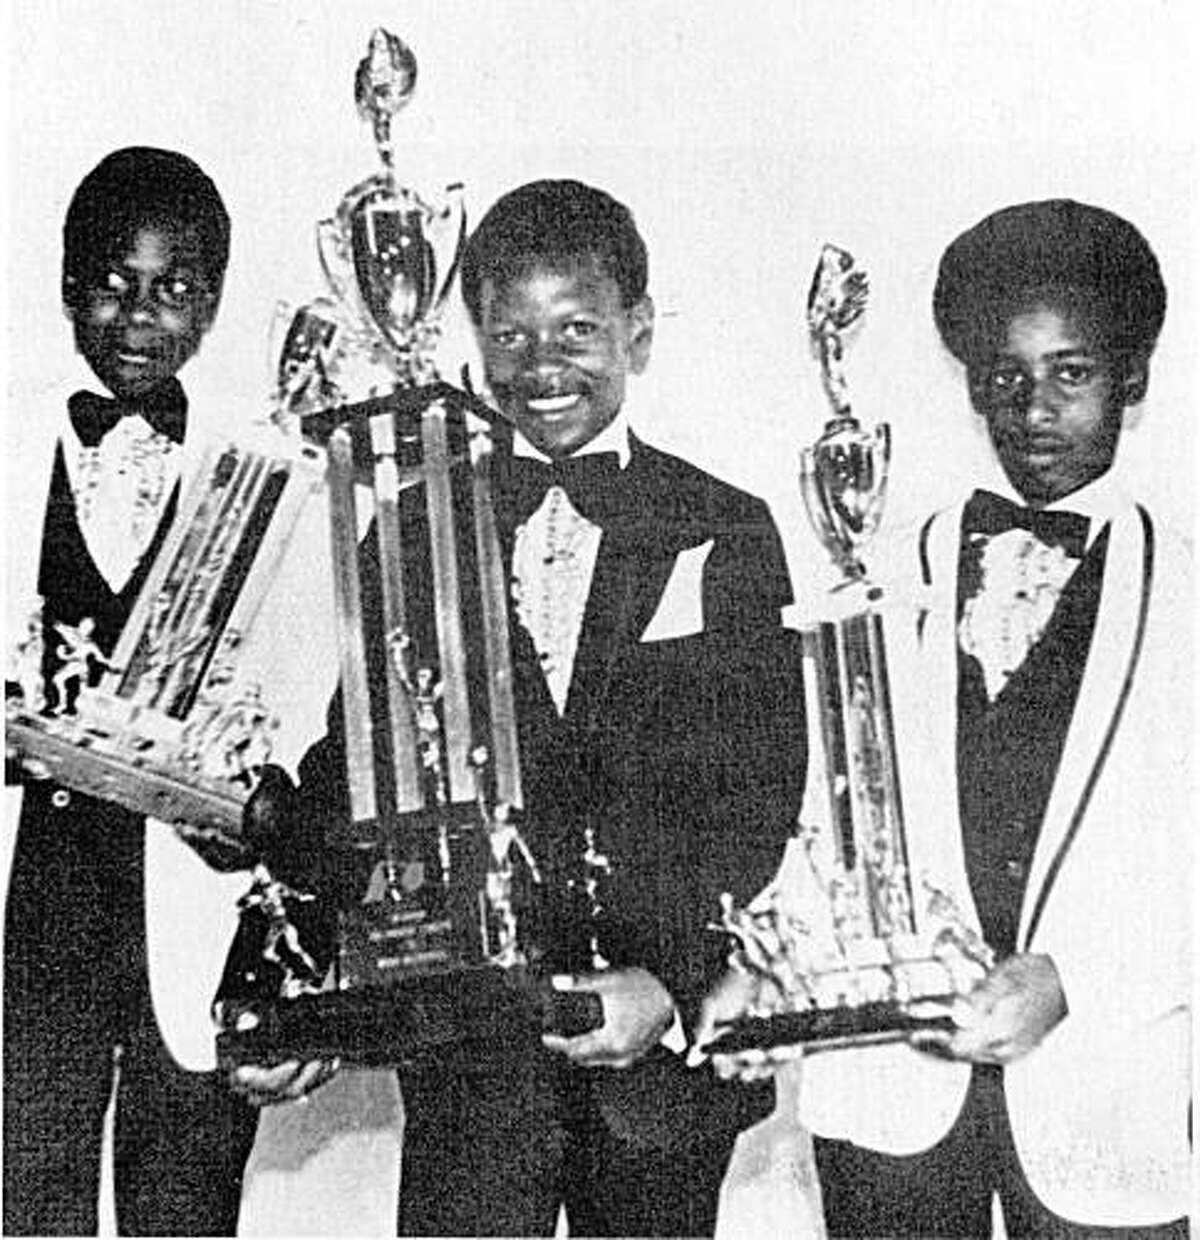 Rickey Henderson, Center, with trophy as athlete of the year at Bushrod Park. Kerry Bland is on left and right is Lamont Whitehead.